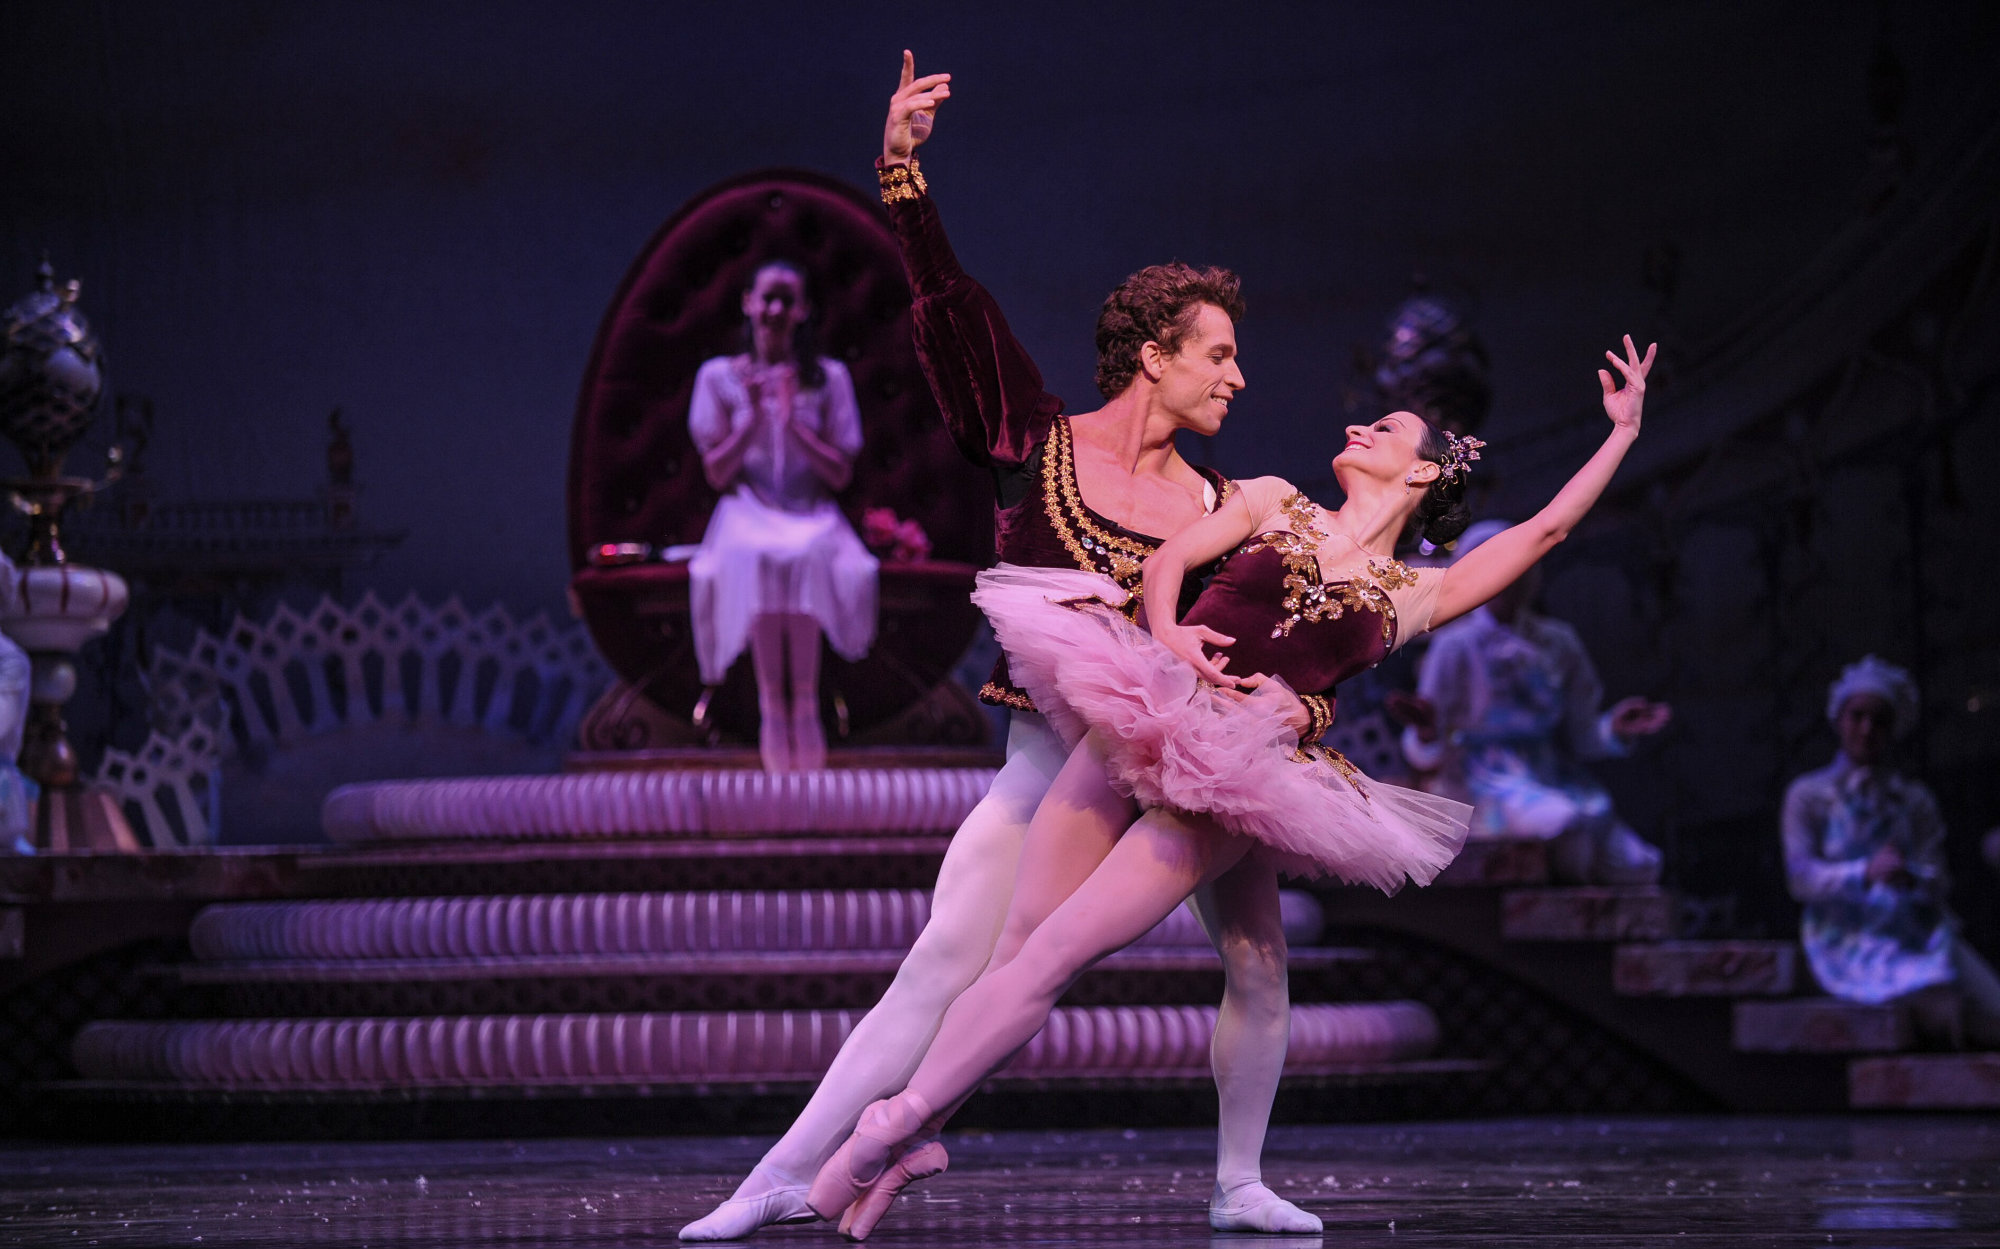 Andre Silva with Leticia Oliveira in 'The Nutcracker'